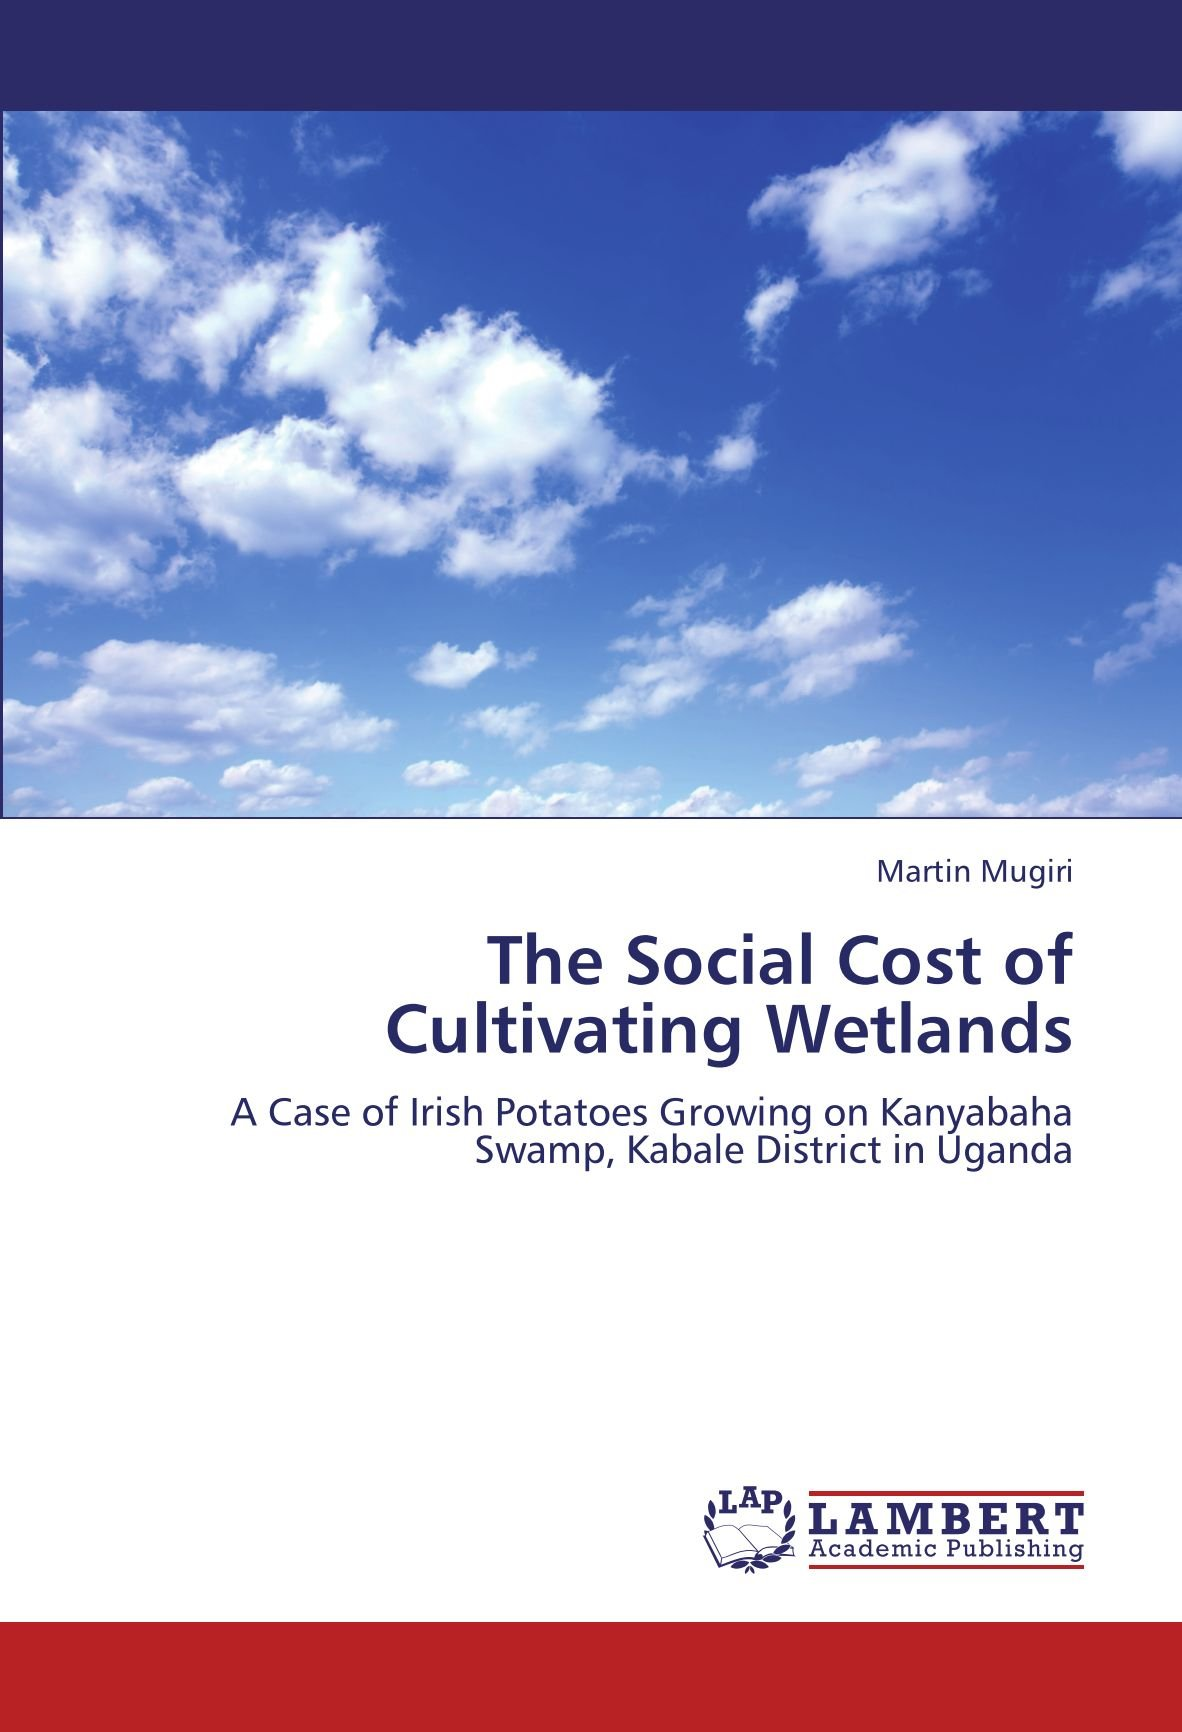 The Social Cost of Cultivating Wetlands: A Case of Irish Potatoes Growing on Kanyabaha Swamp, Kabale District in Uganda PDF